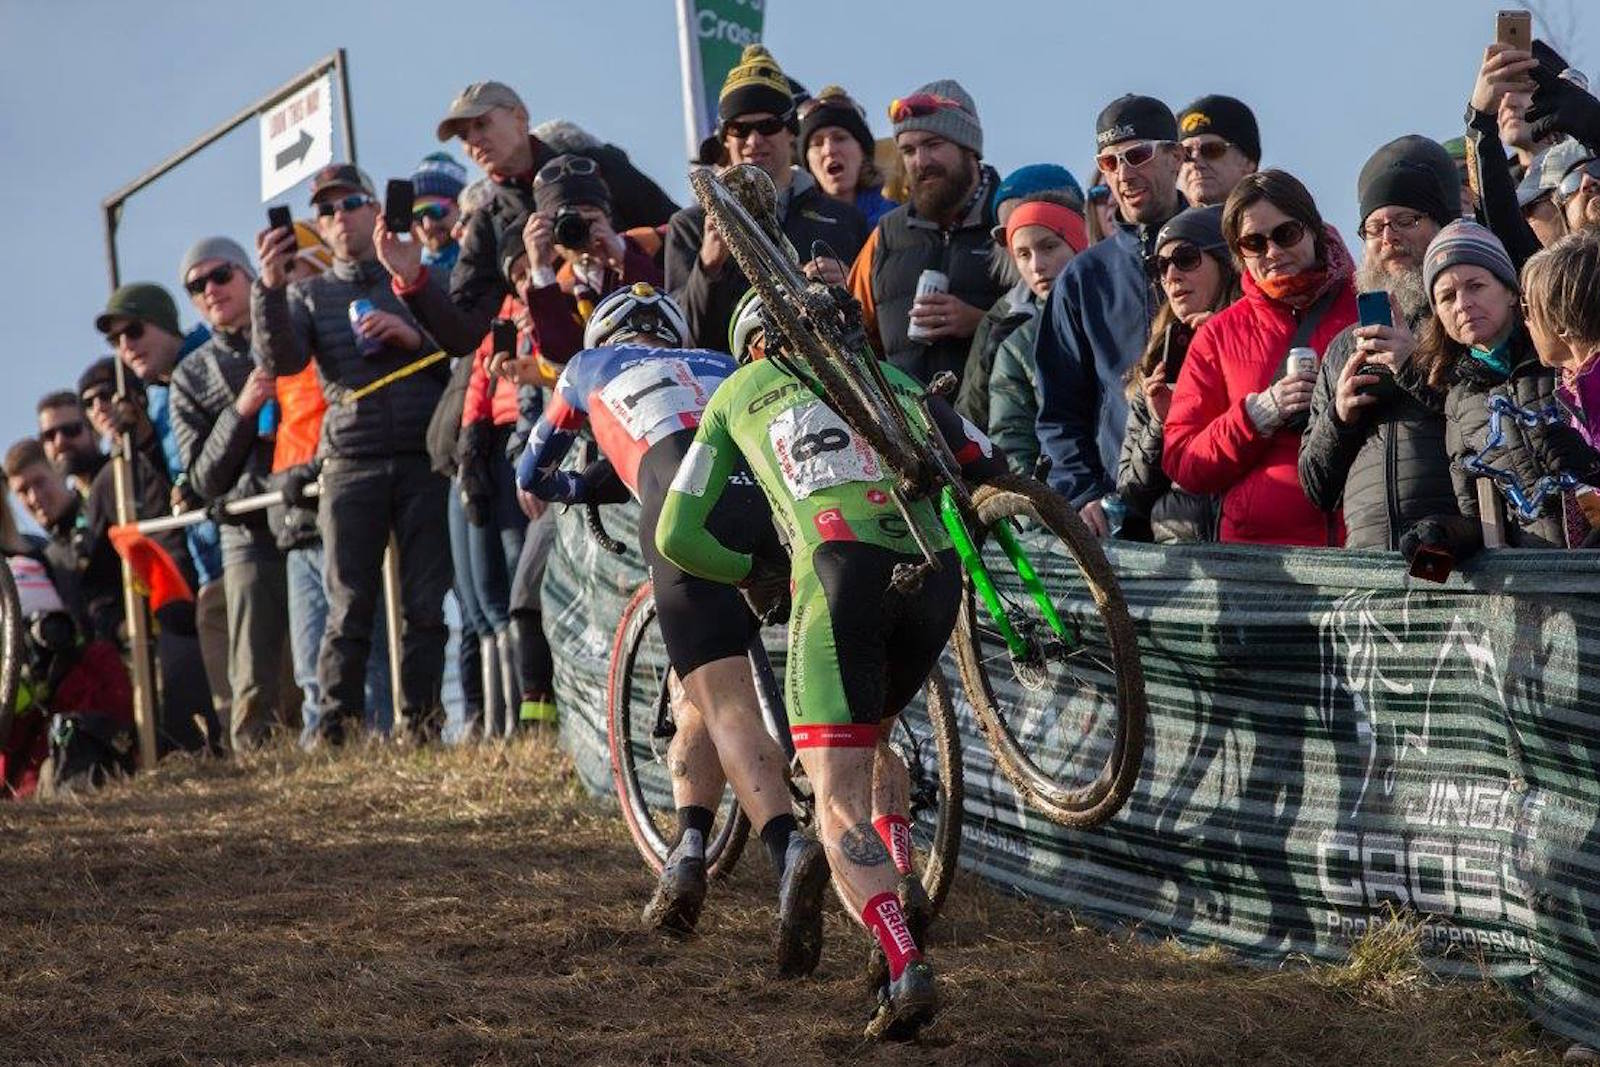 Jeremy Powers (Aspire Racing) and Stephen Hyde (Cannondale) at the 2015 Volkswagen Jingle Cross. Photo: Wil Matthews.